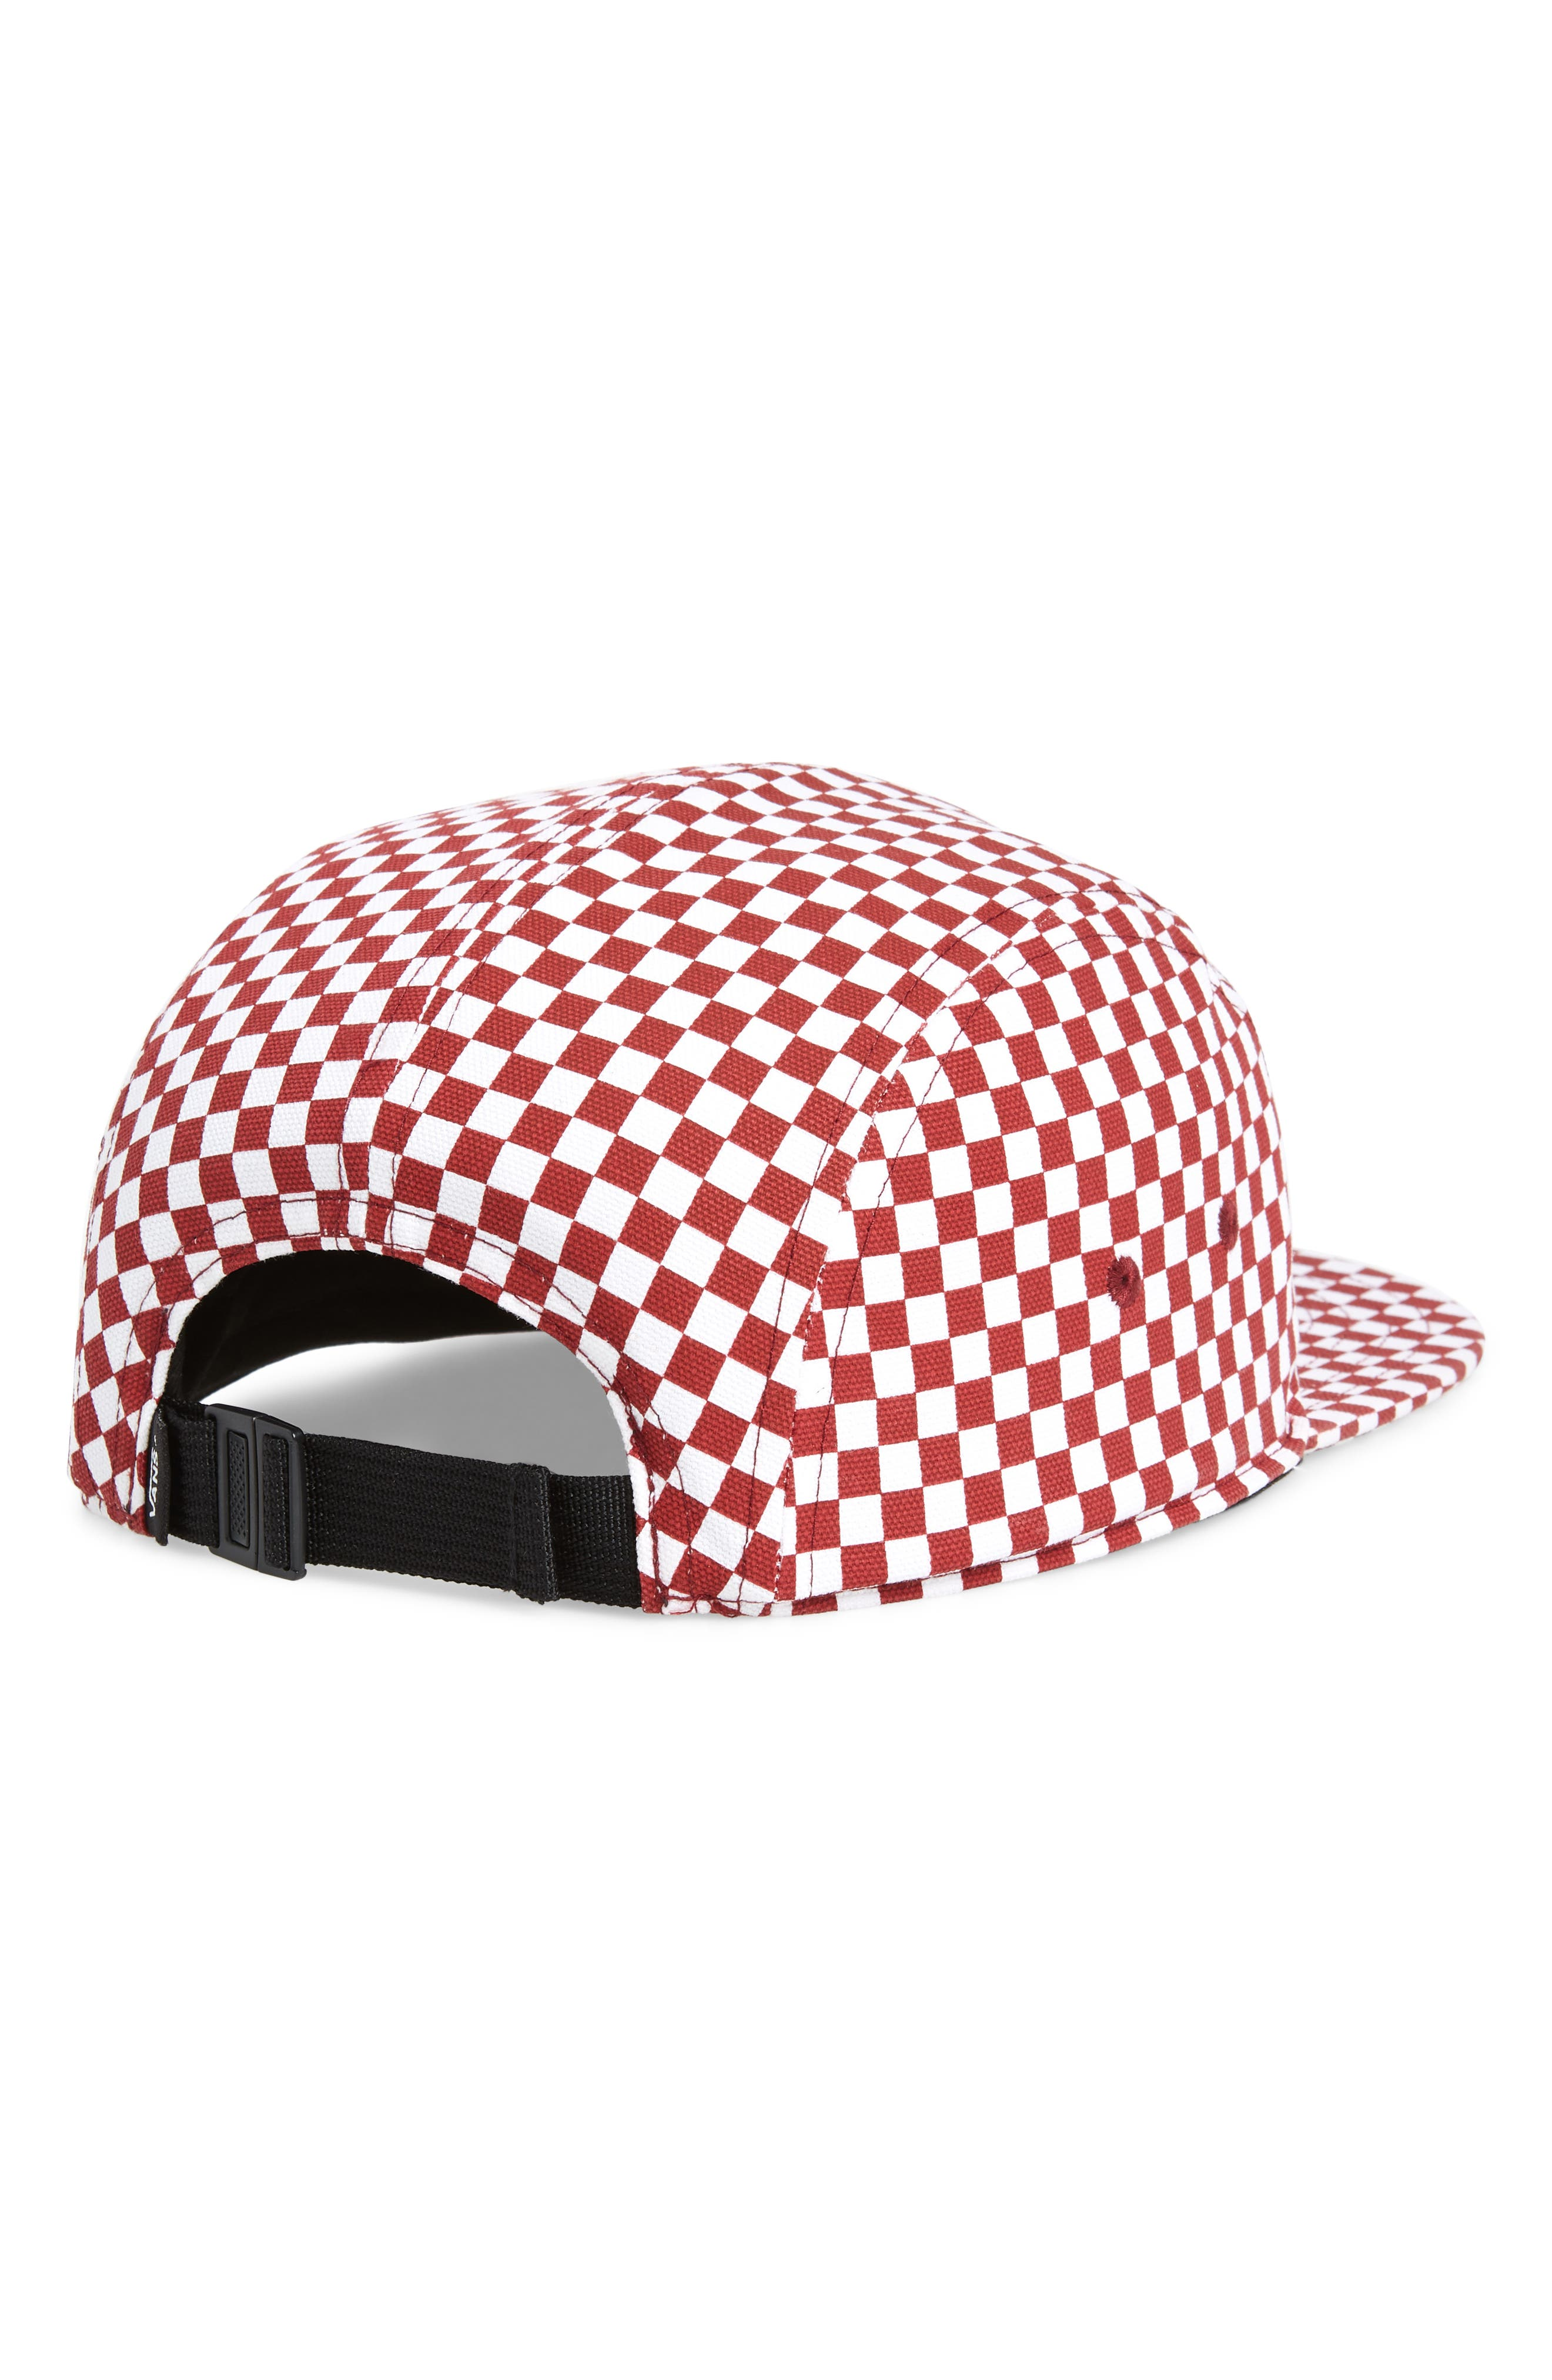 David Five Panel Cap,                             Alternate thumbnail 2, color,                             Red/ White Check